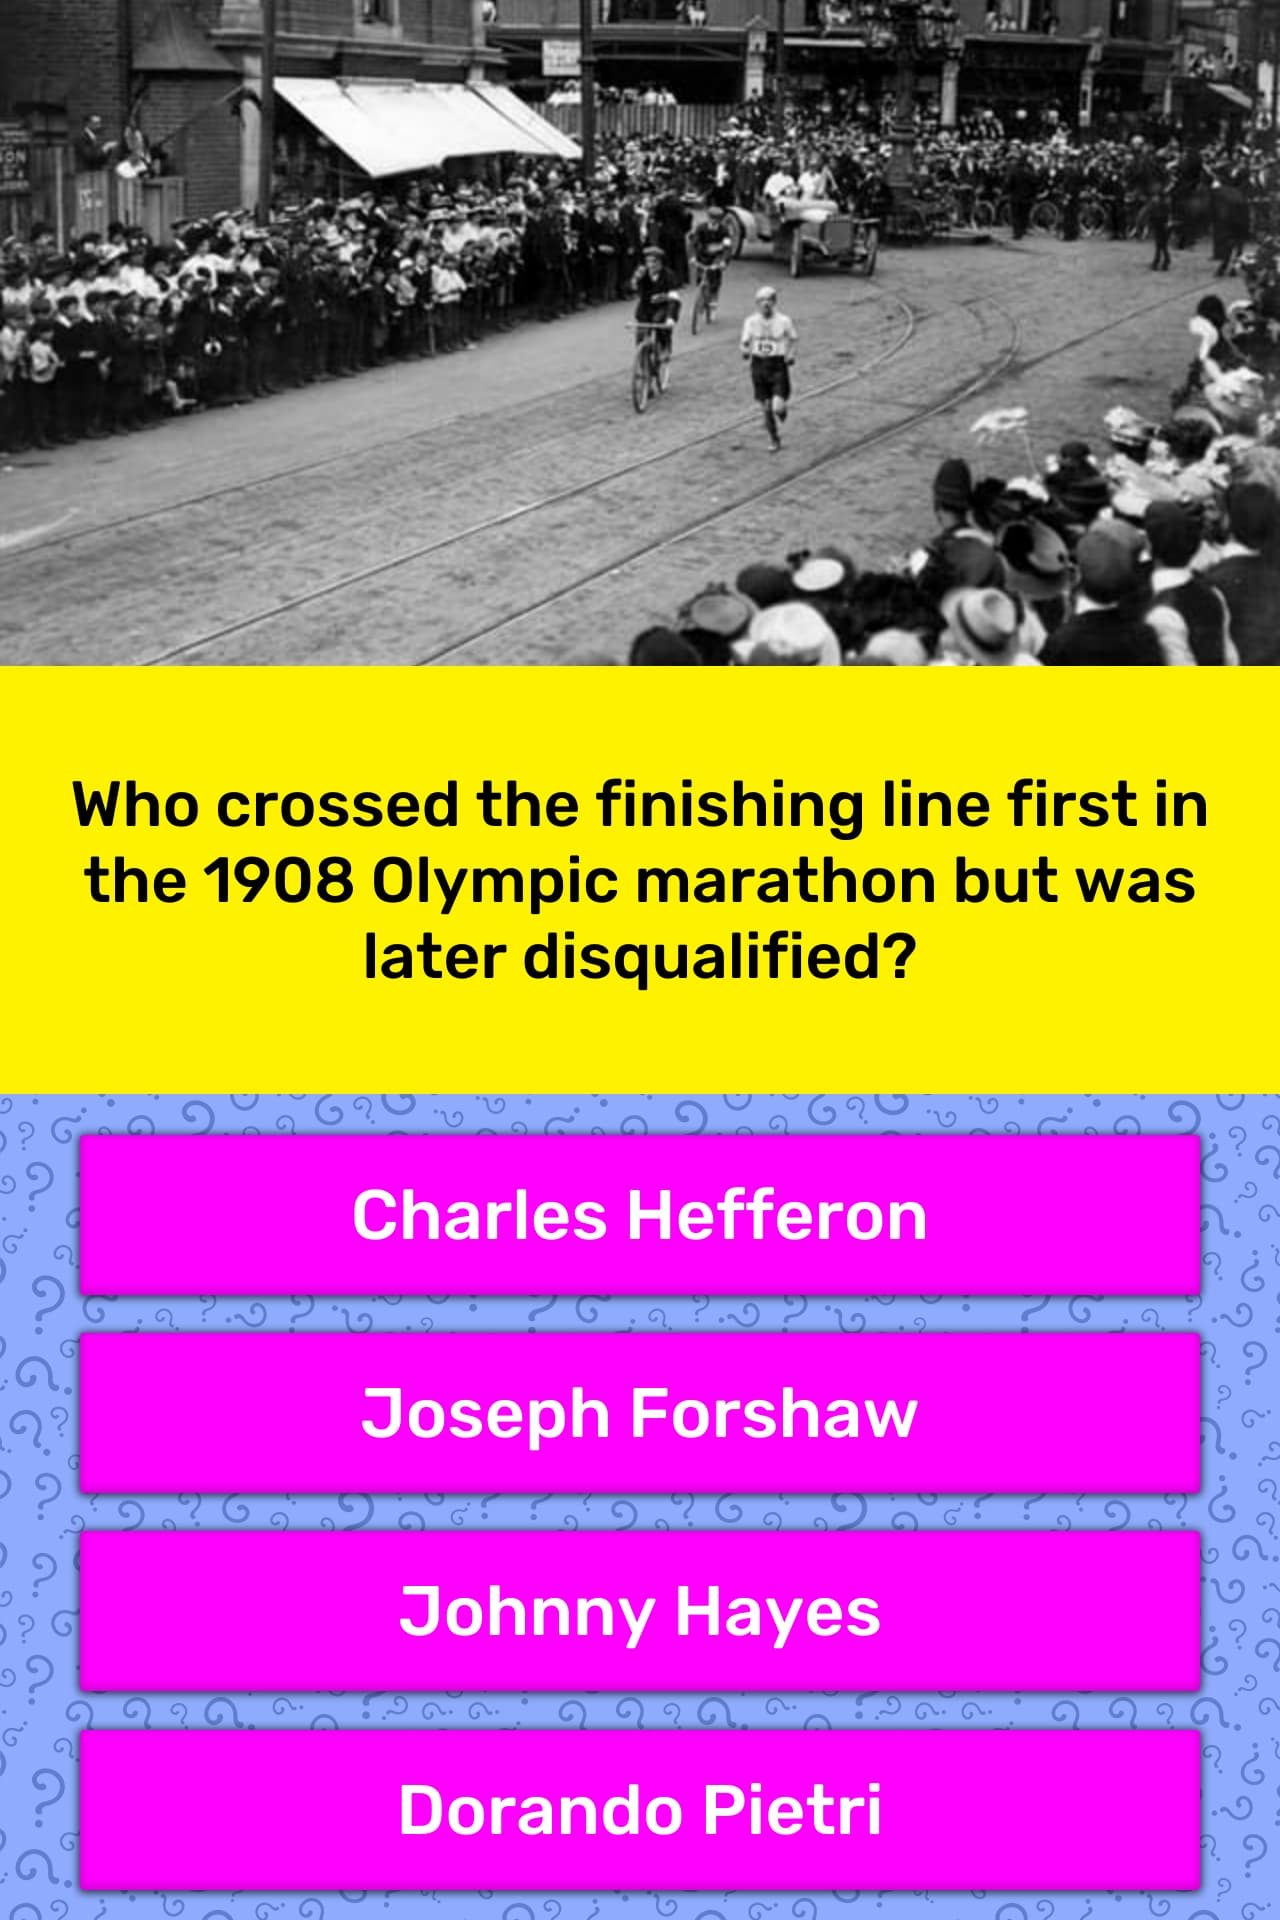 Who crossed the finishing line first    | Trivia Answers